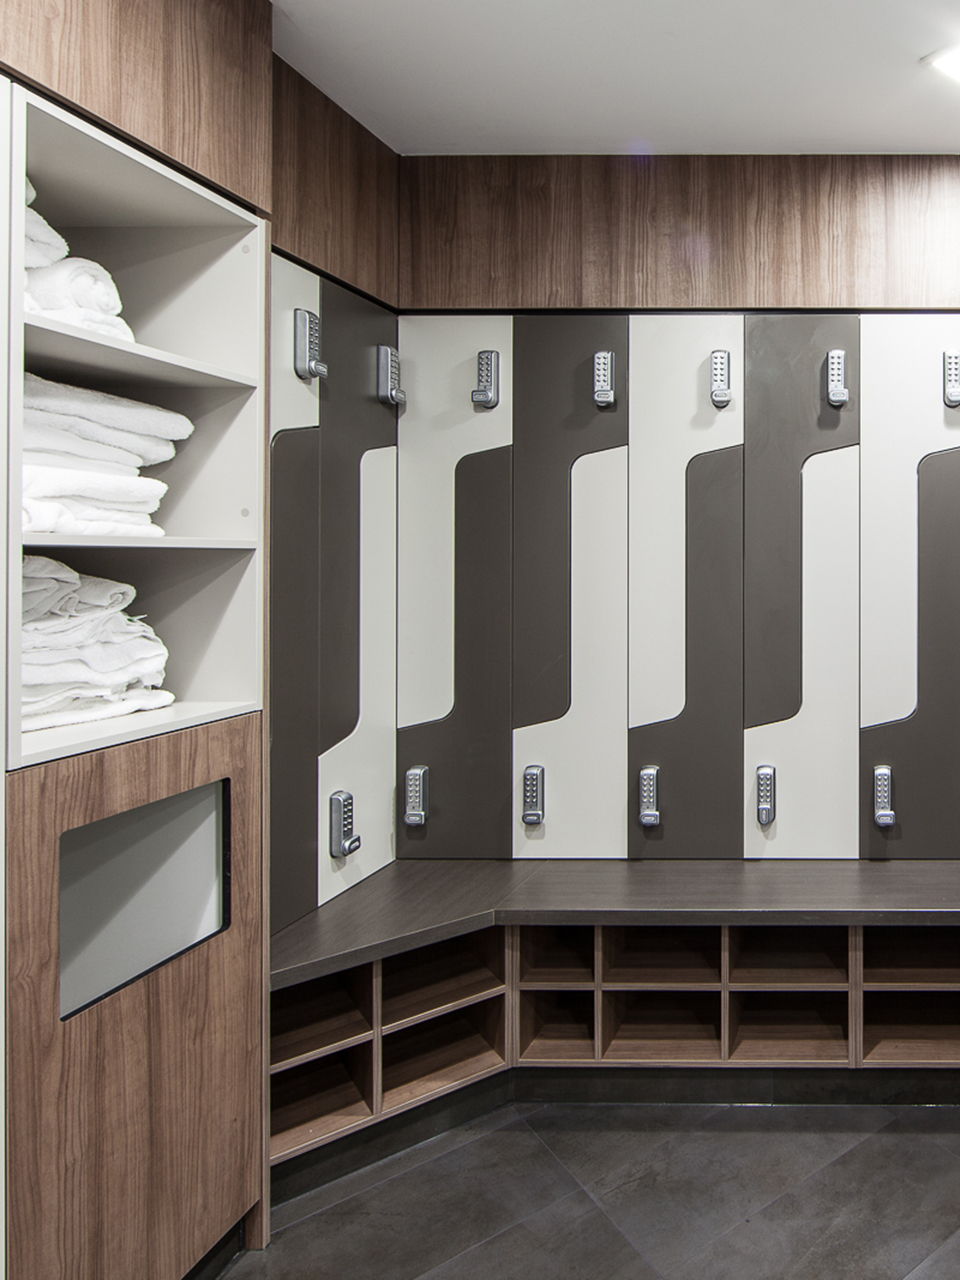 CUBILOC LOCKERS